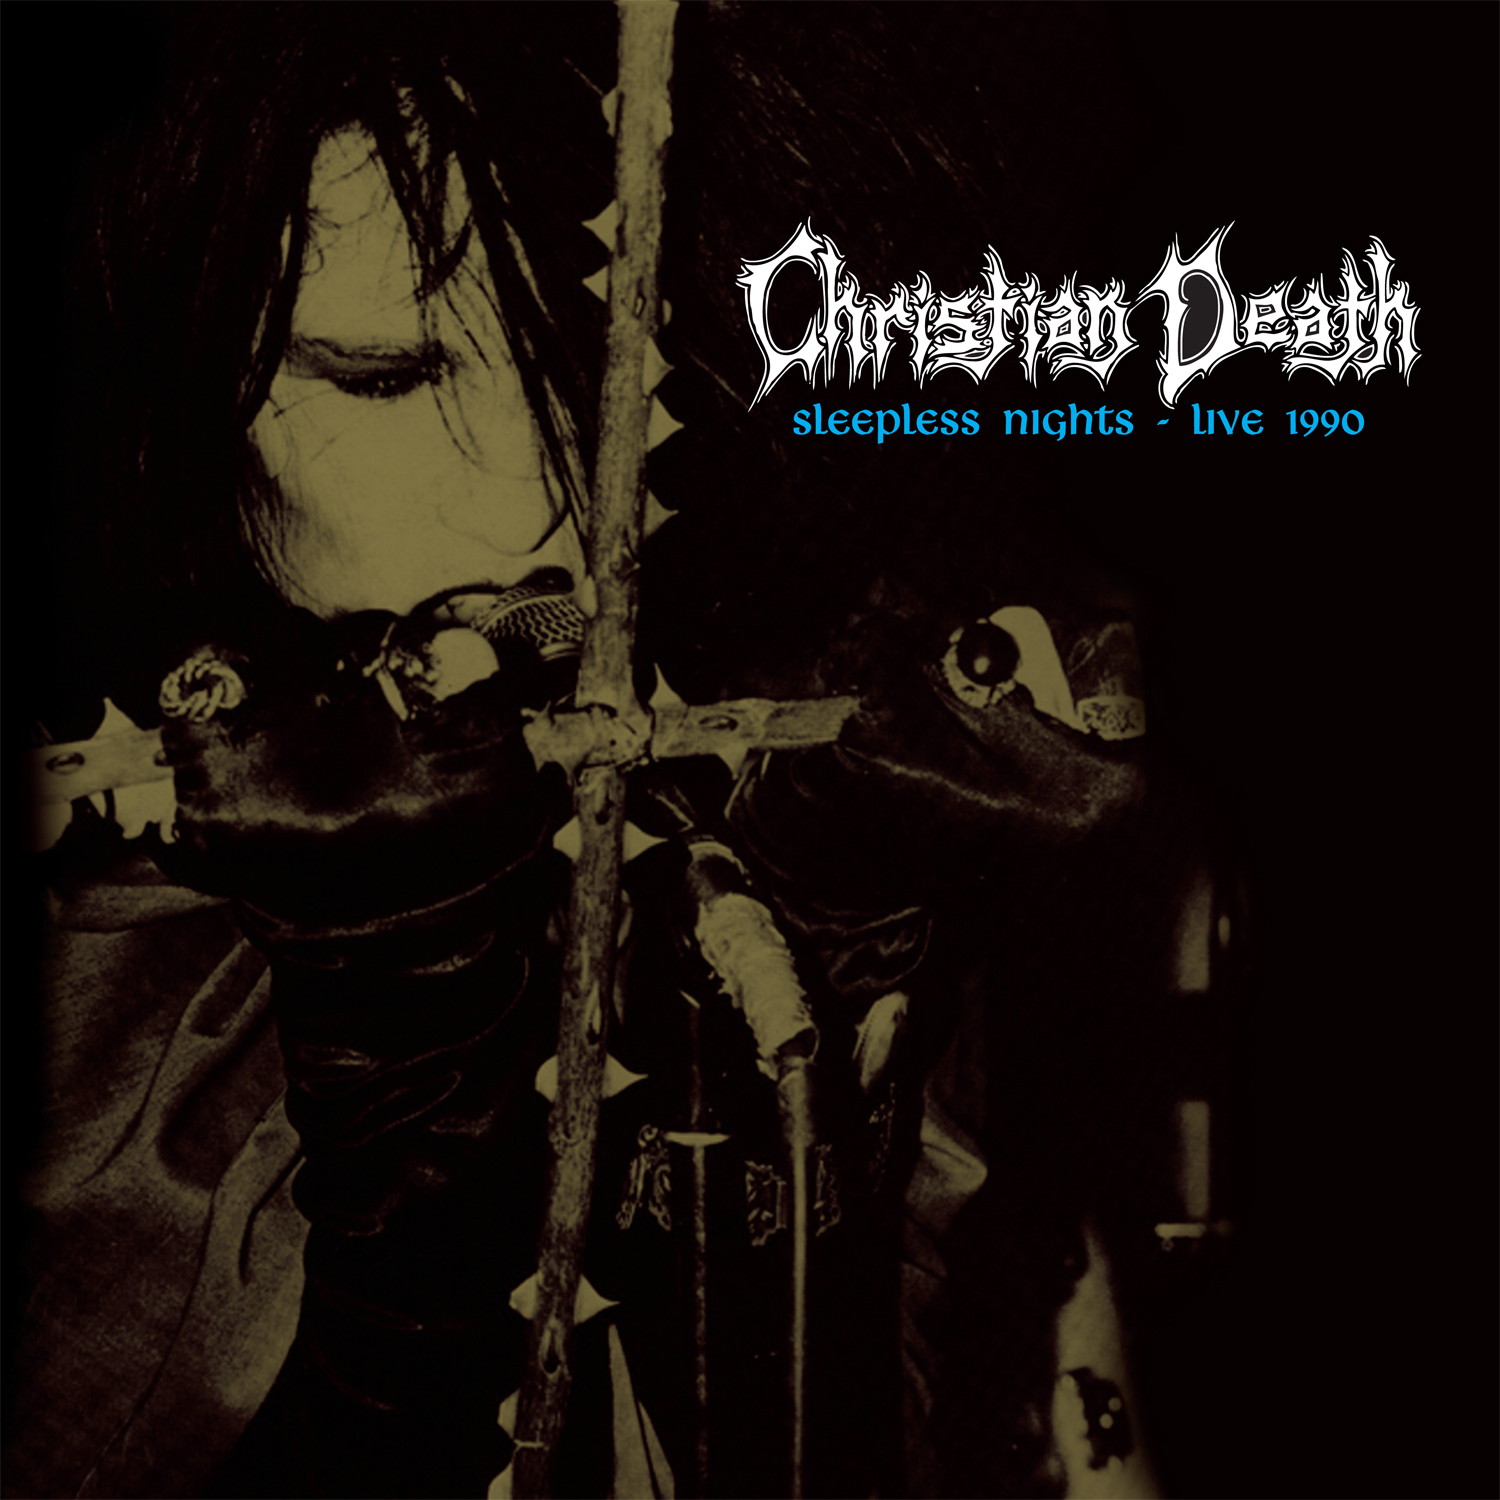 Christian Death - Sleepless Nights - Live 1990 (LP)